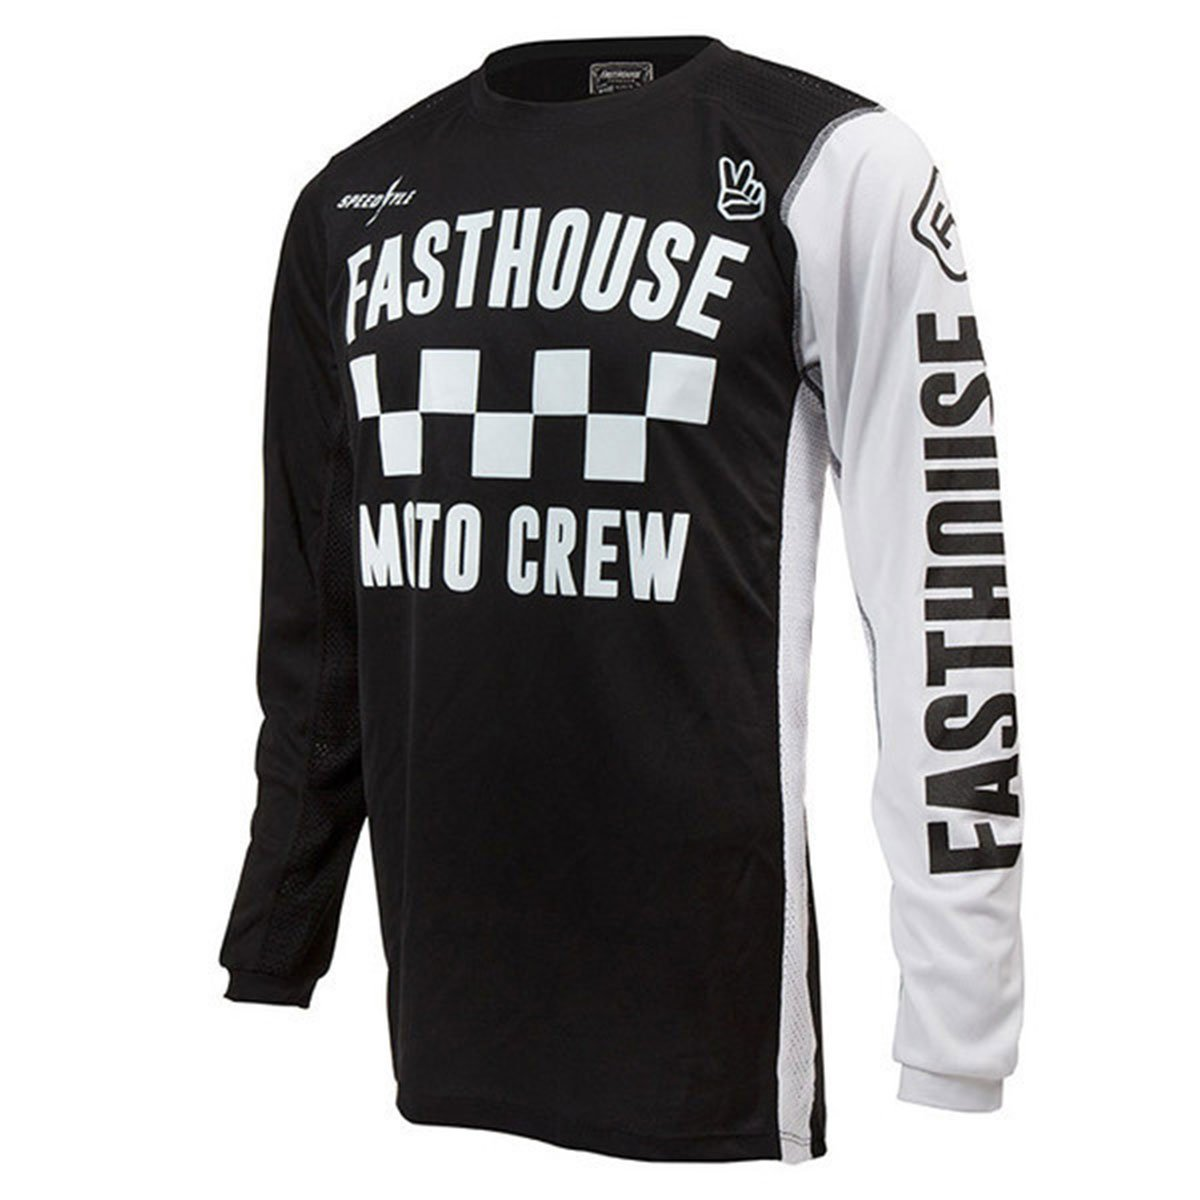 Fasthouse Checkers Air Cooled Men's Motocross Motorcycle Jersey Black Large by Fasthouse (Image #1)